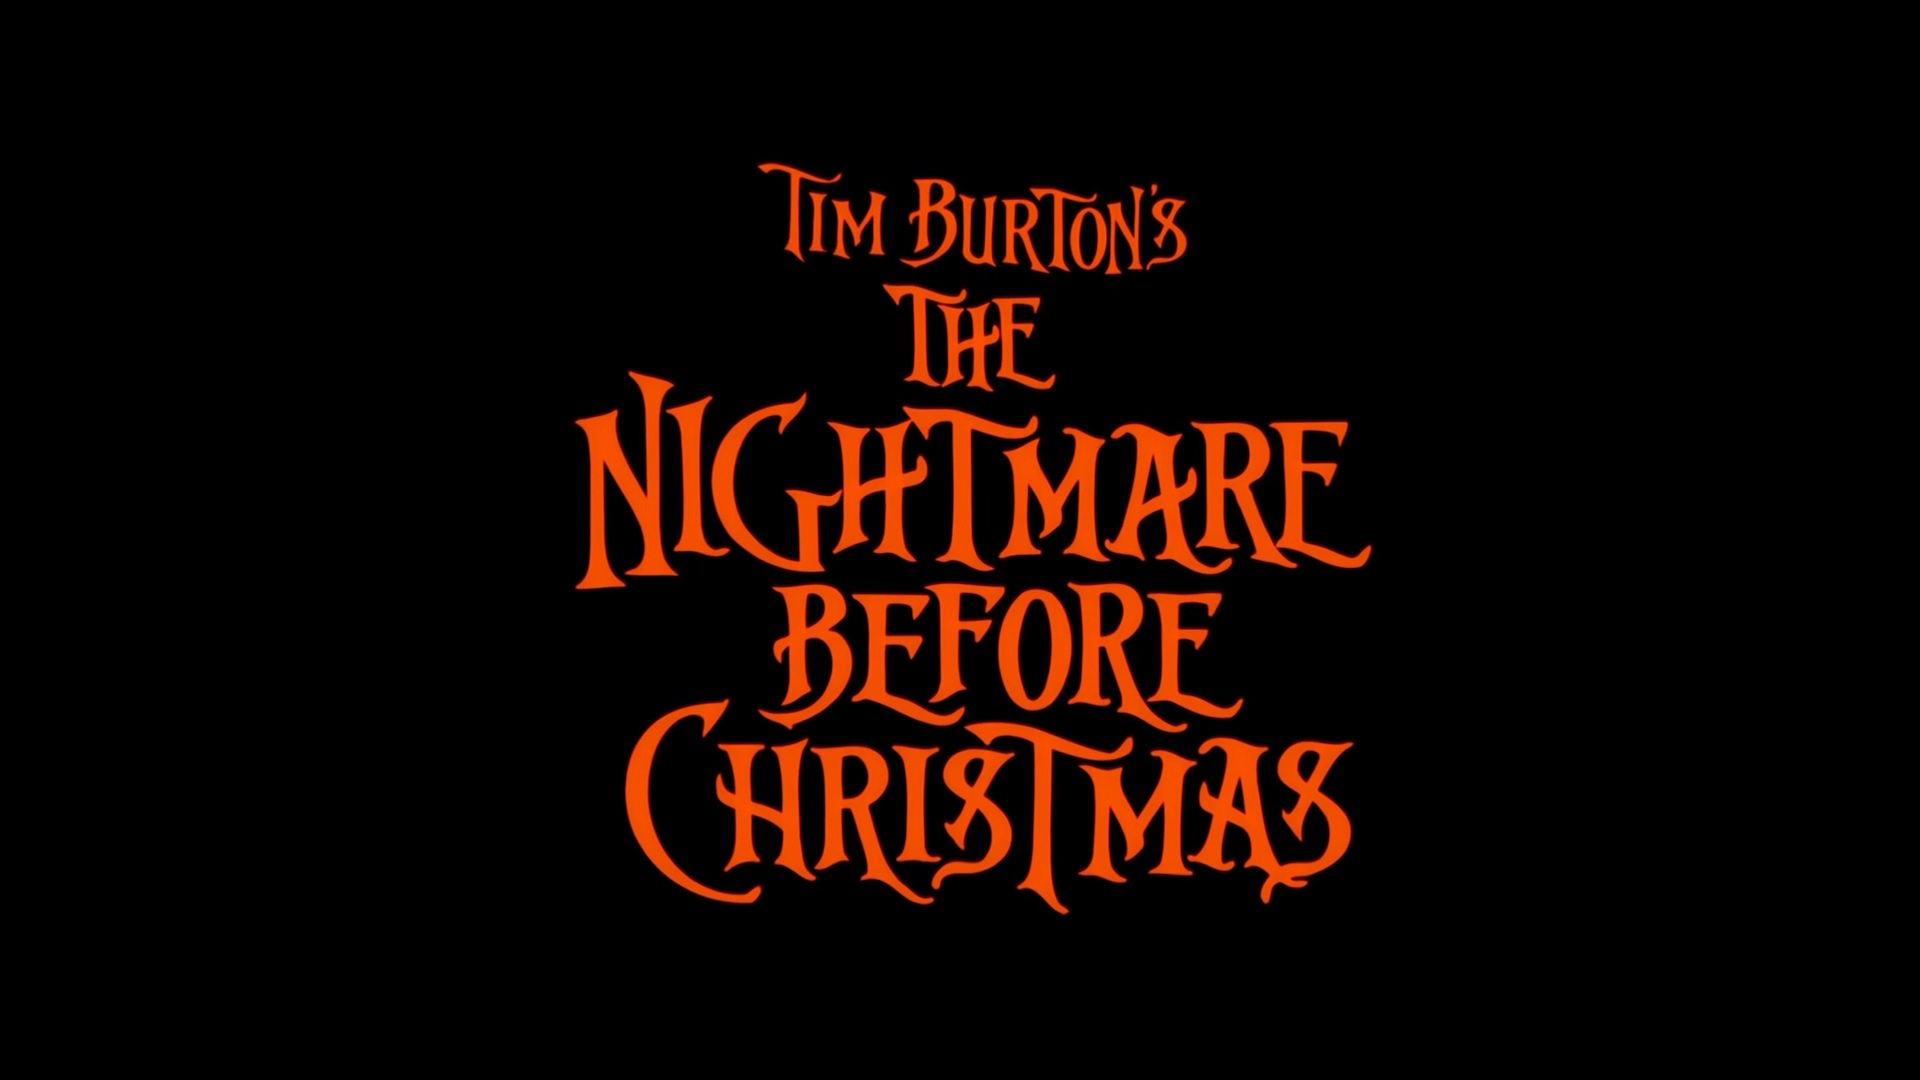 The Nightmare Before Christmas | Christmas Specials Wiki | FANDOM ...